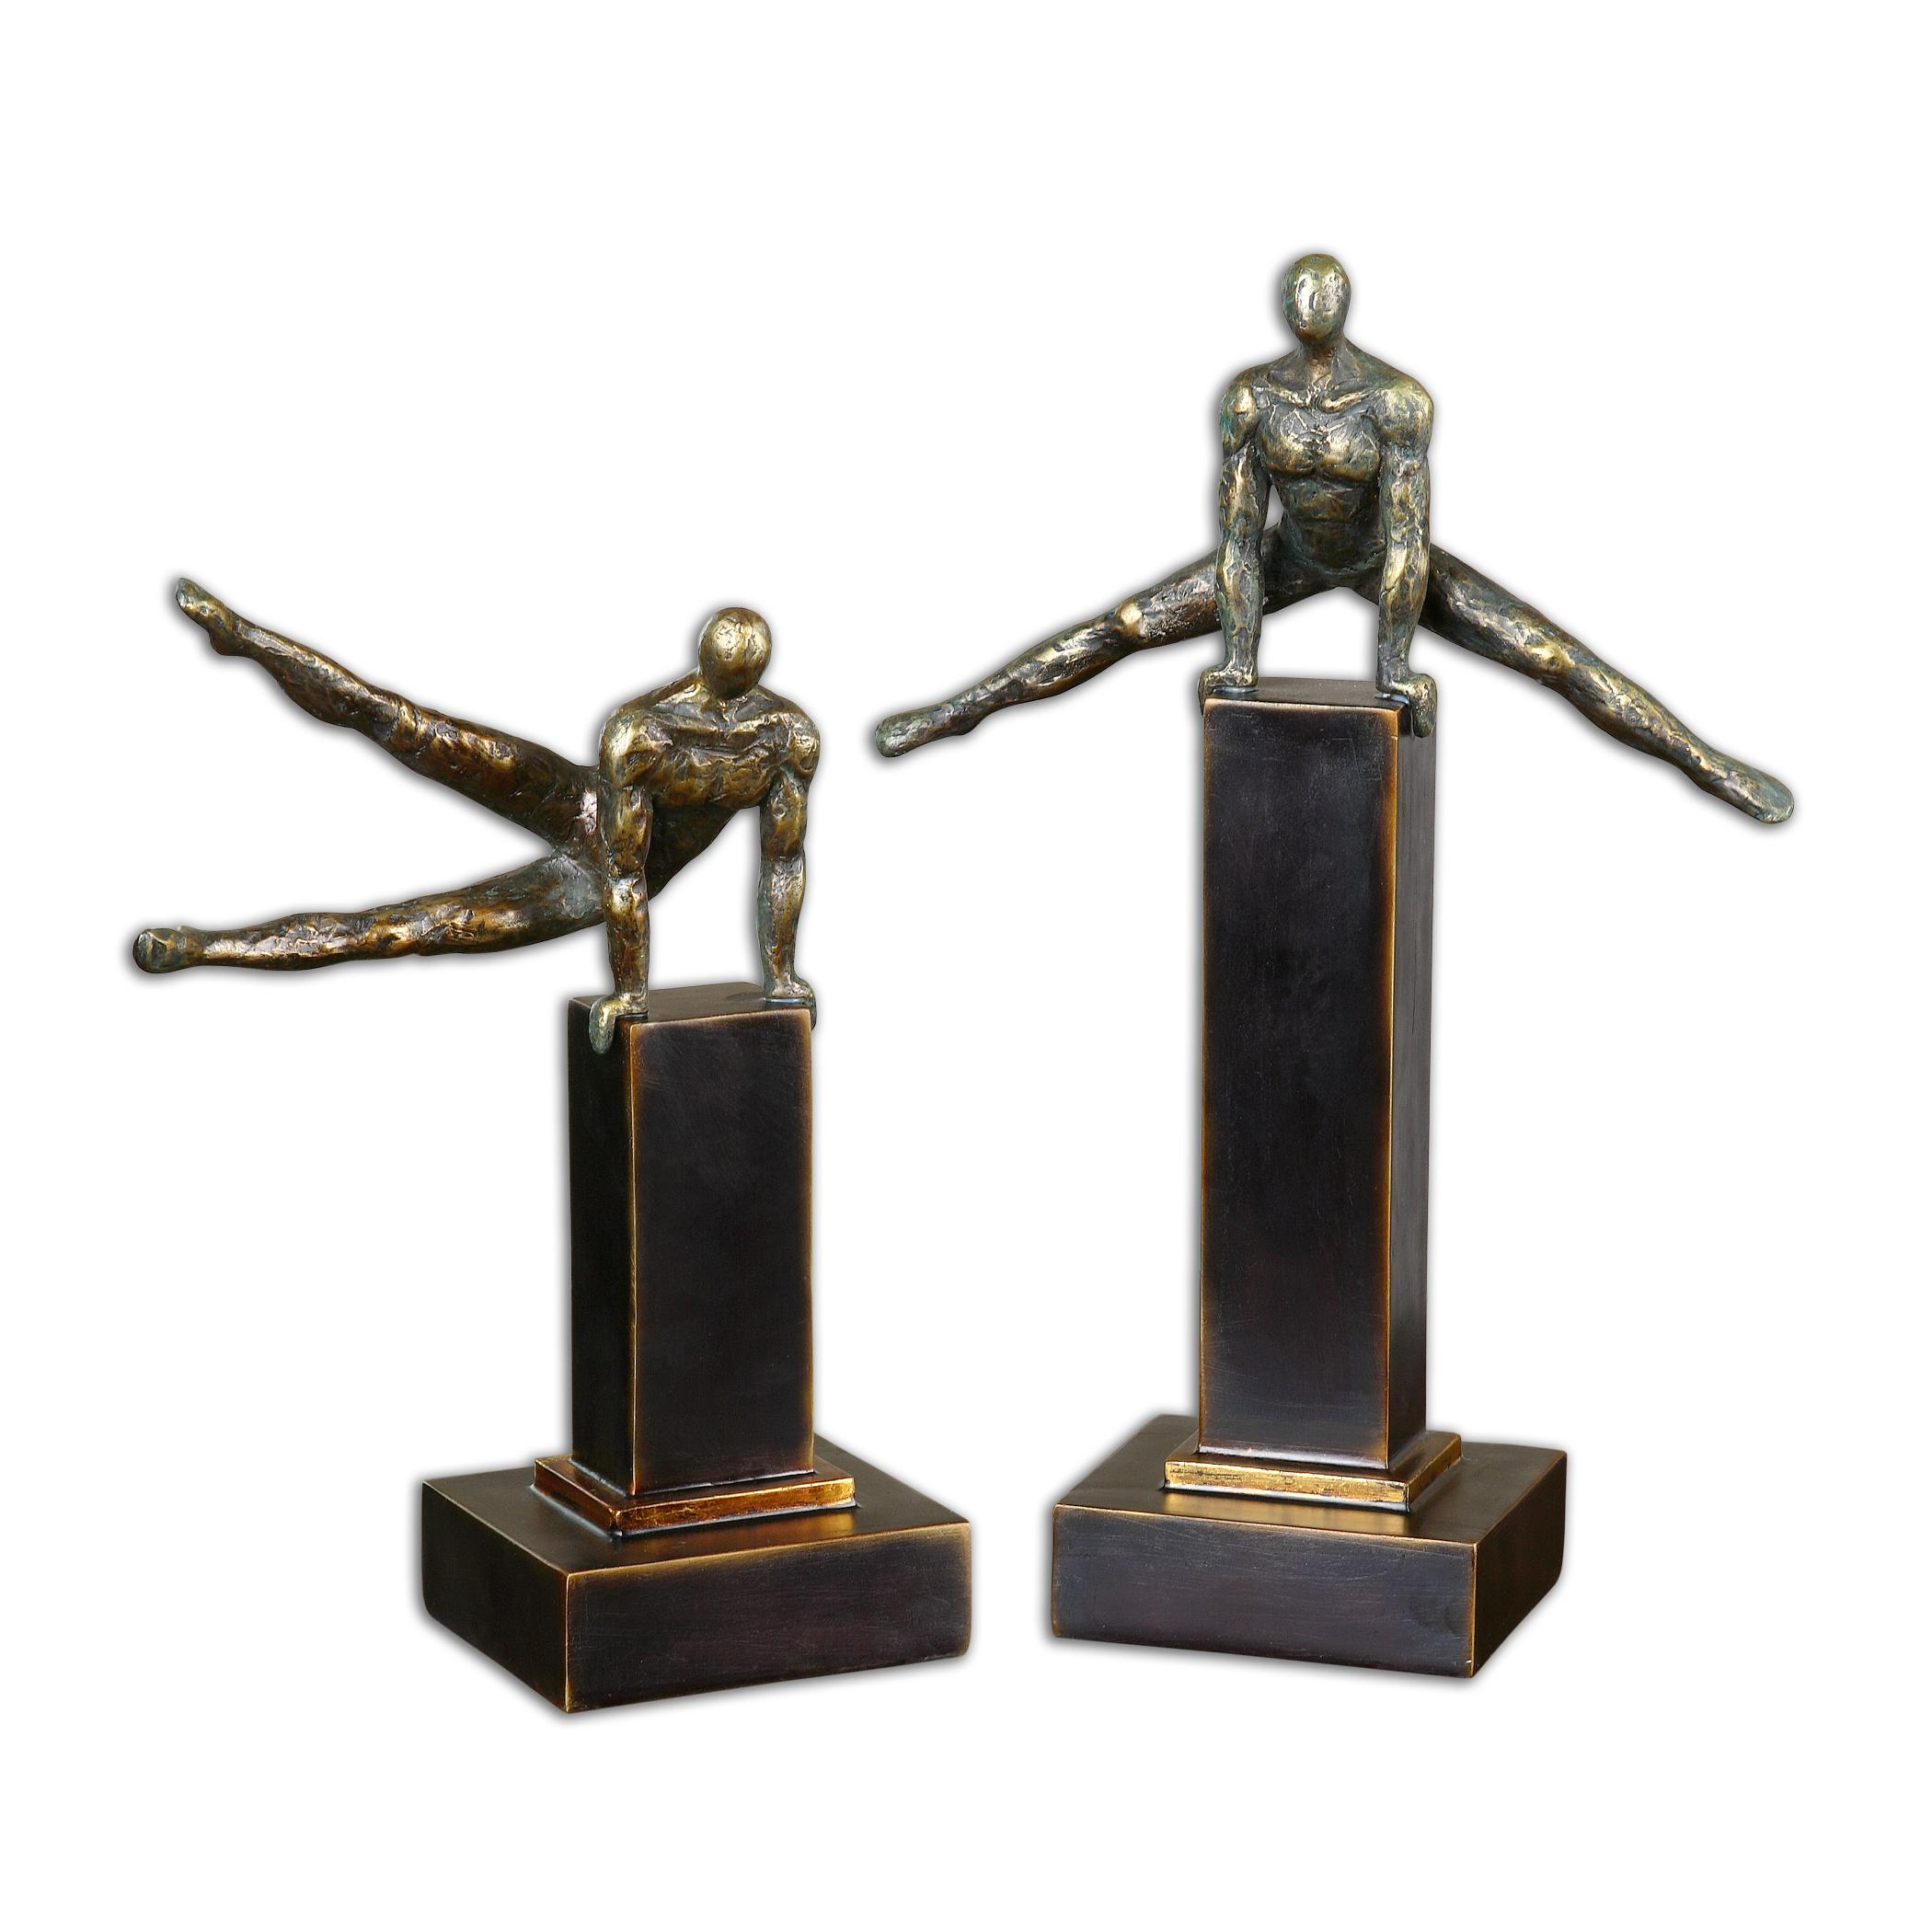 Uttermost Accessories Pommel Sculptures, Set of 2 - Item Number: 19897